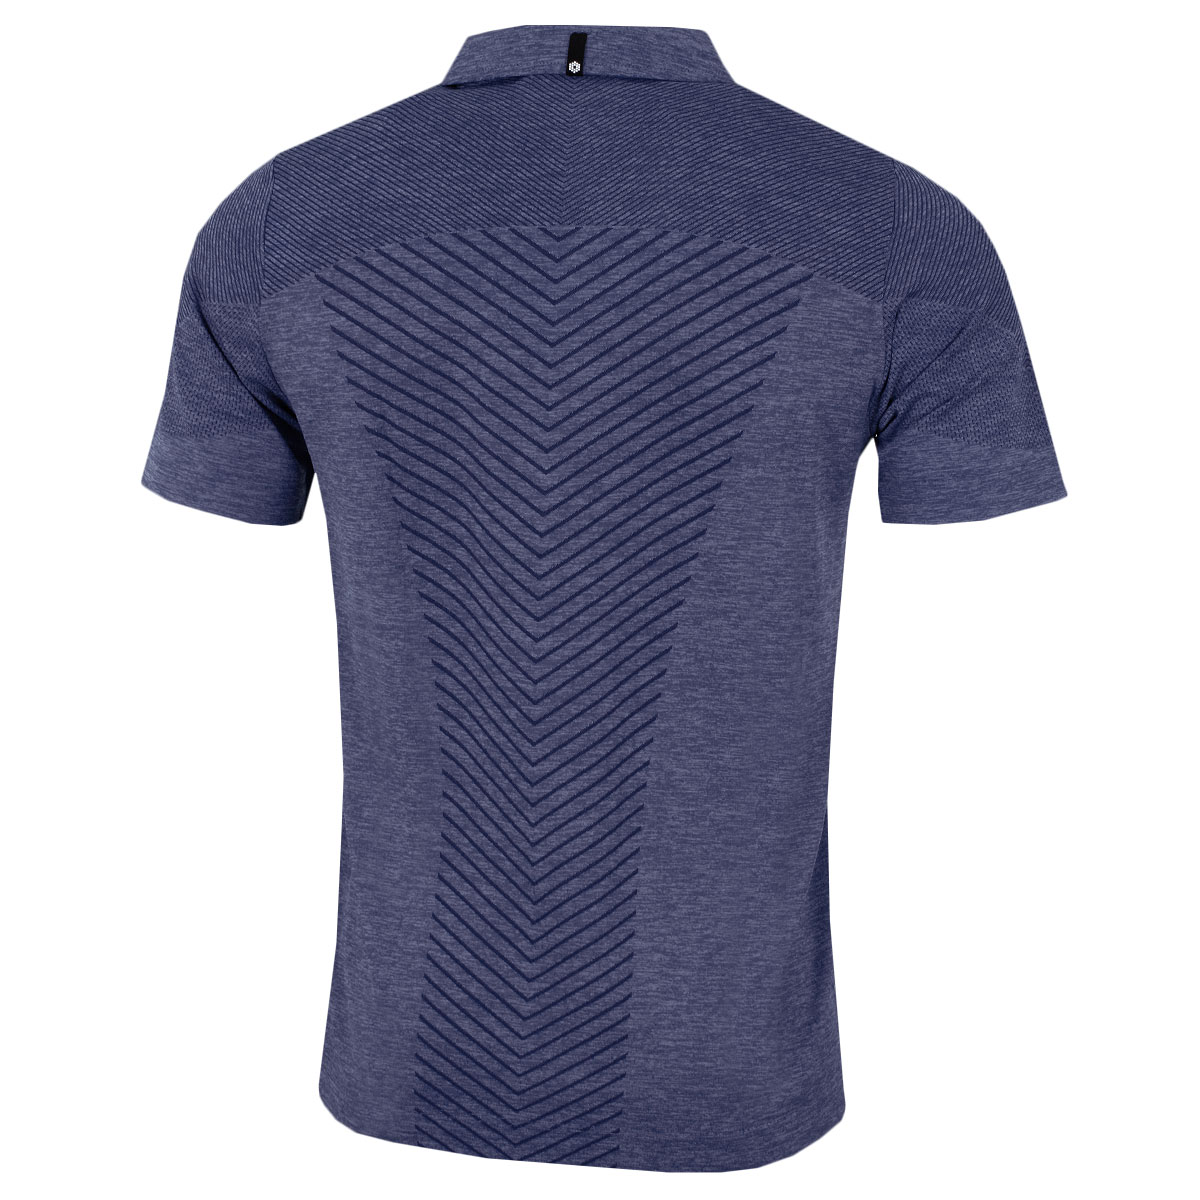 Puma-Golf-Mens-Evoknit-Seamless-DryCell-Moisture-Wicking-Polo-Shirt-46-OFF-RRP thumbnail 7